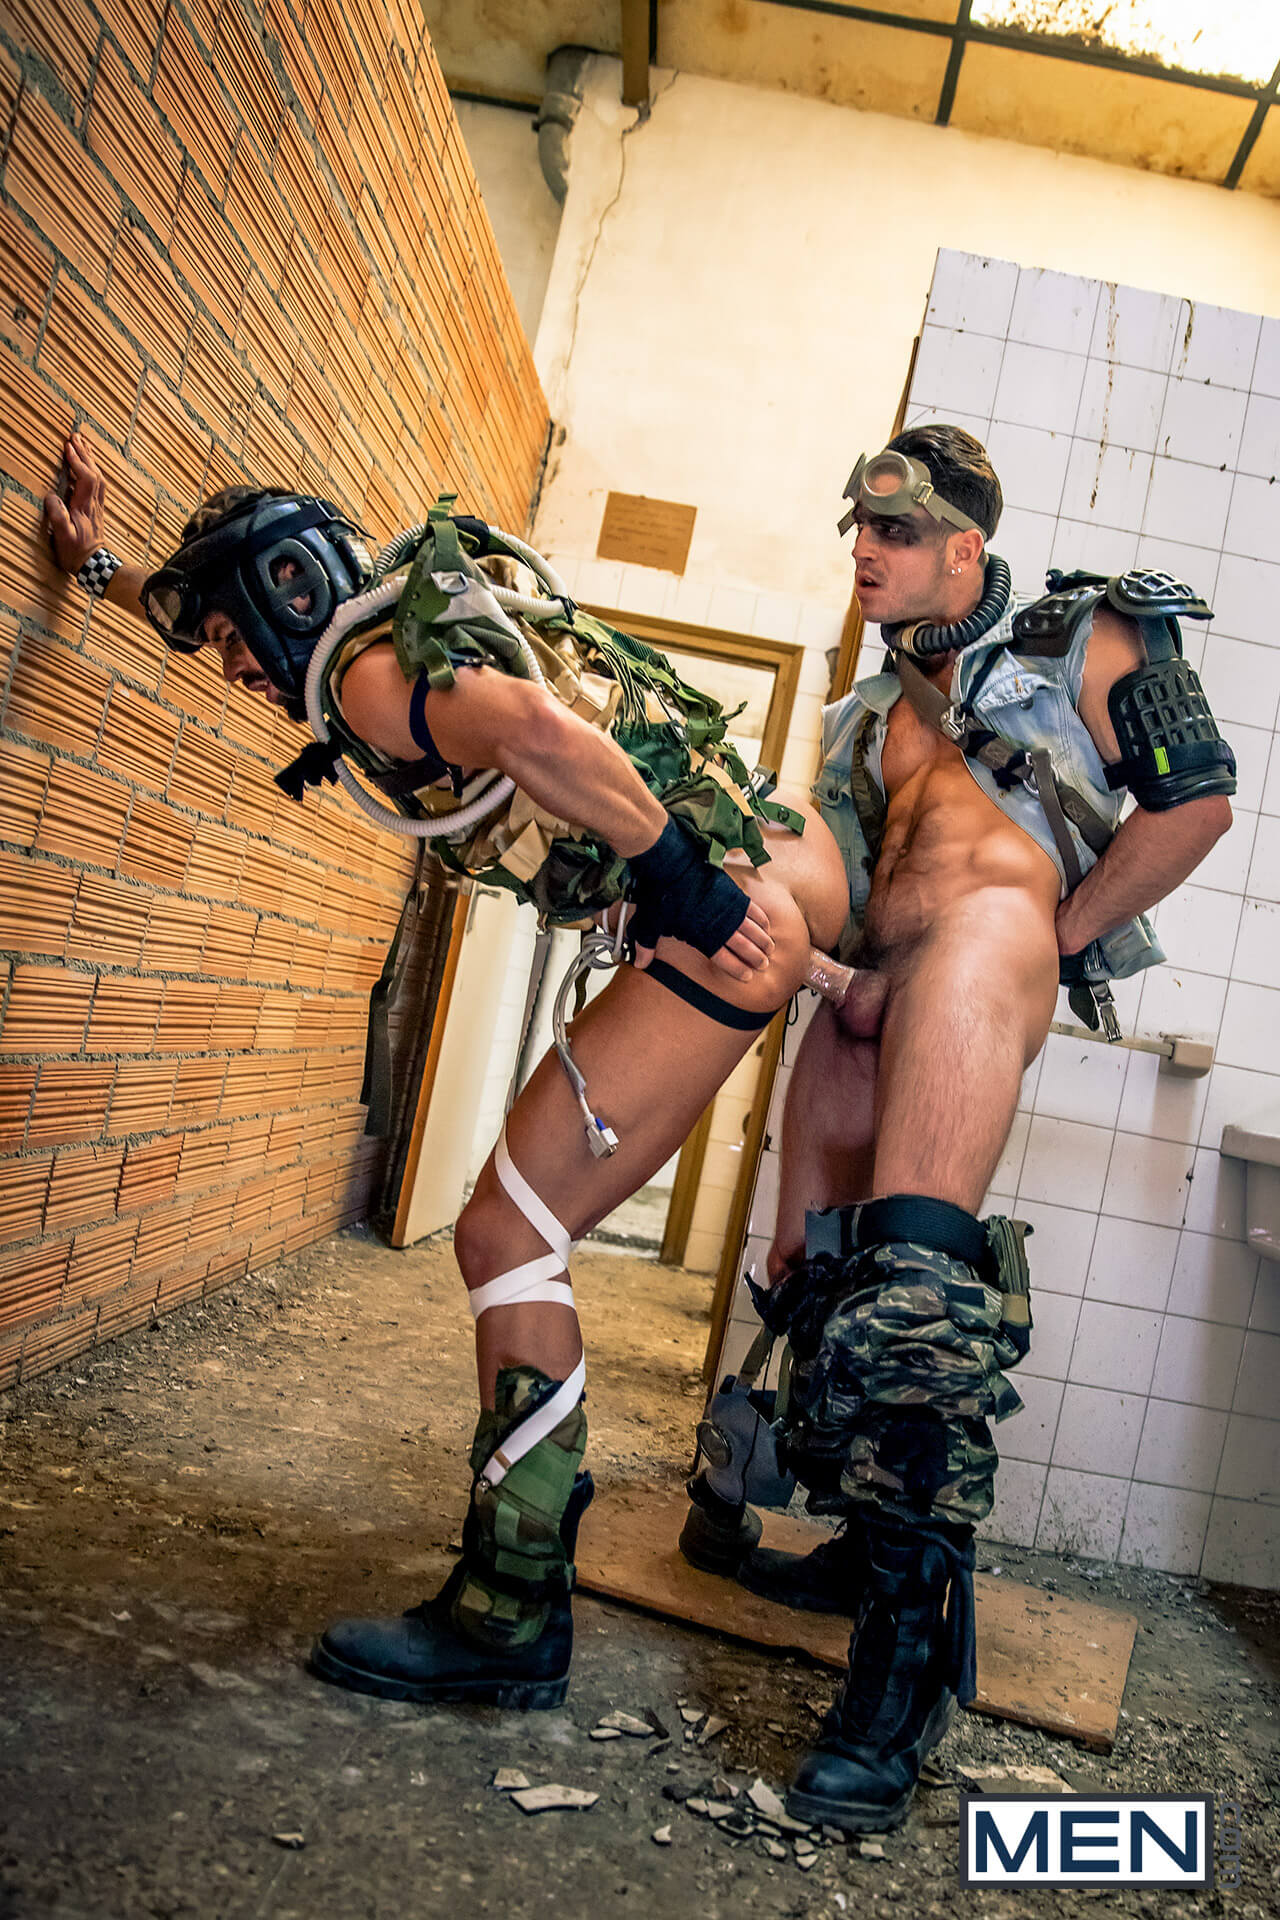 men str8 to gay apocalypse part 1 hector de silva paddy obrian gay porn blog image 21